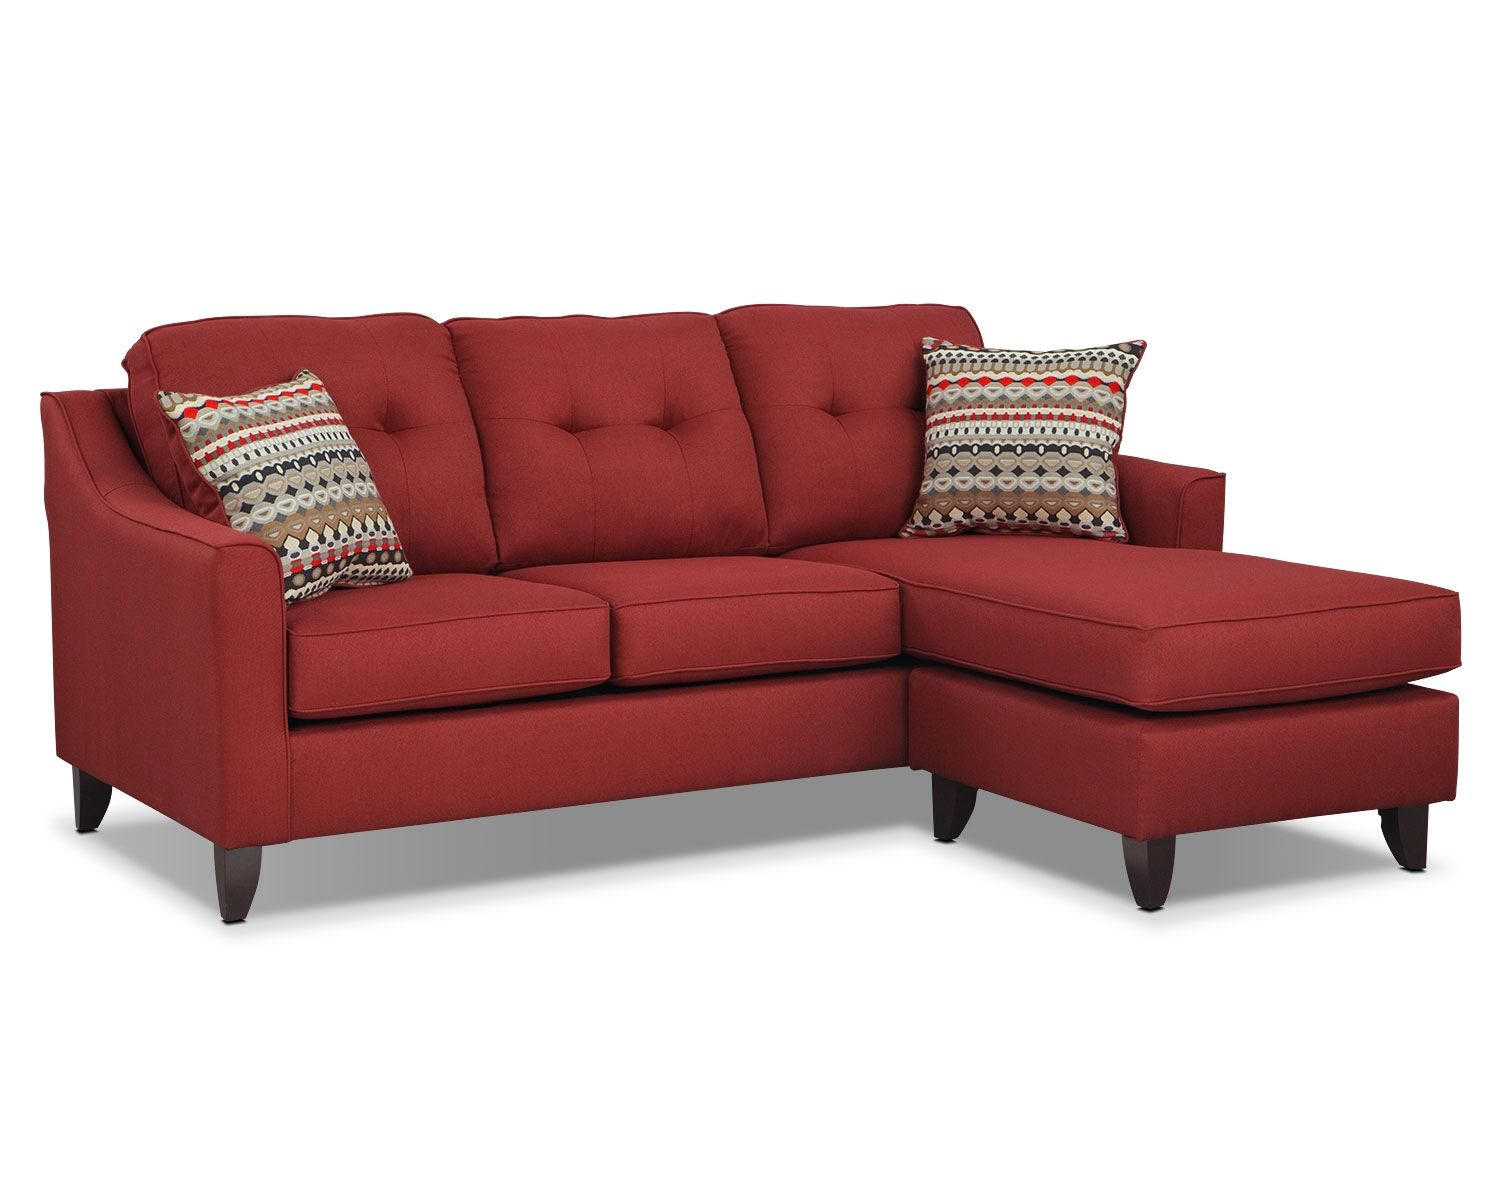 Pleasing Marco Red Sectional Living Room Collection Value City Dailytribune Chair Design For Home Dailytribuneorg